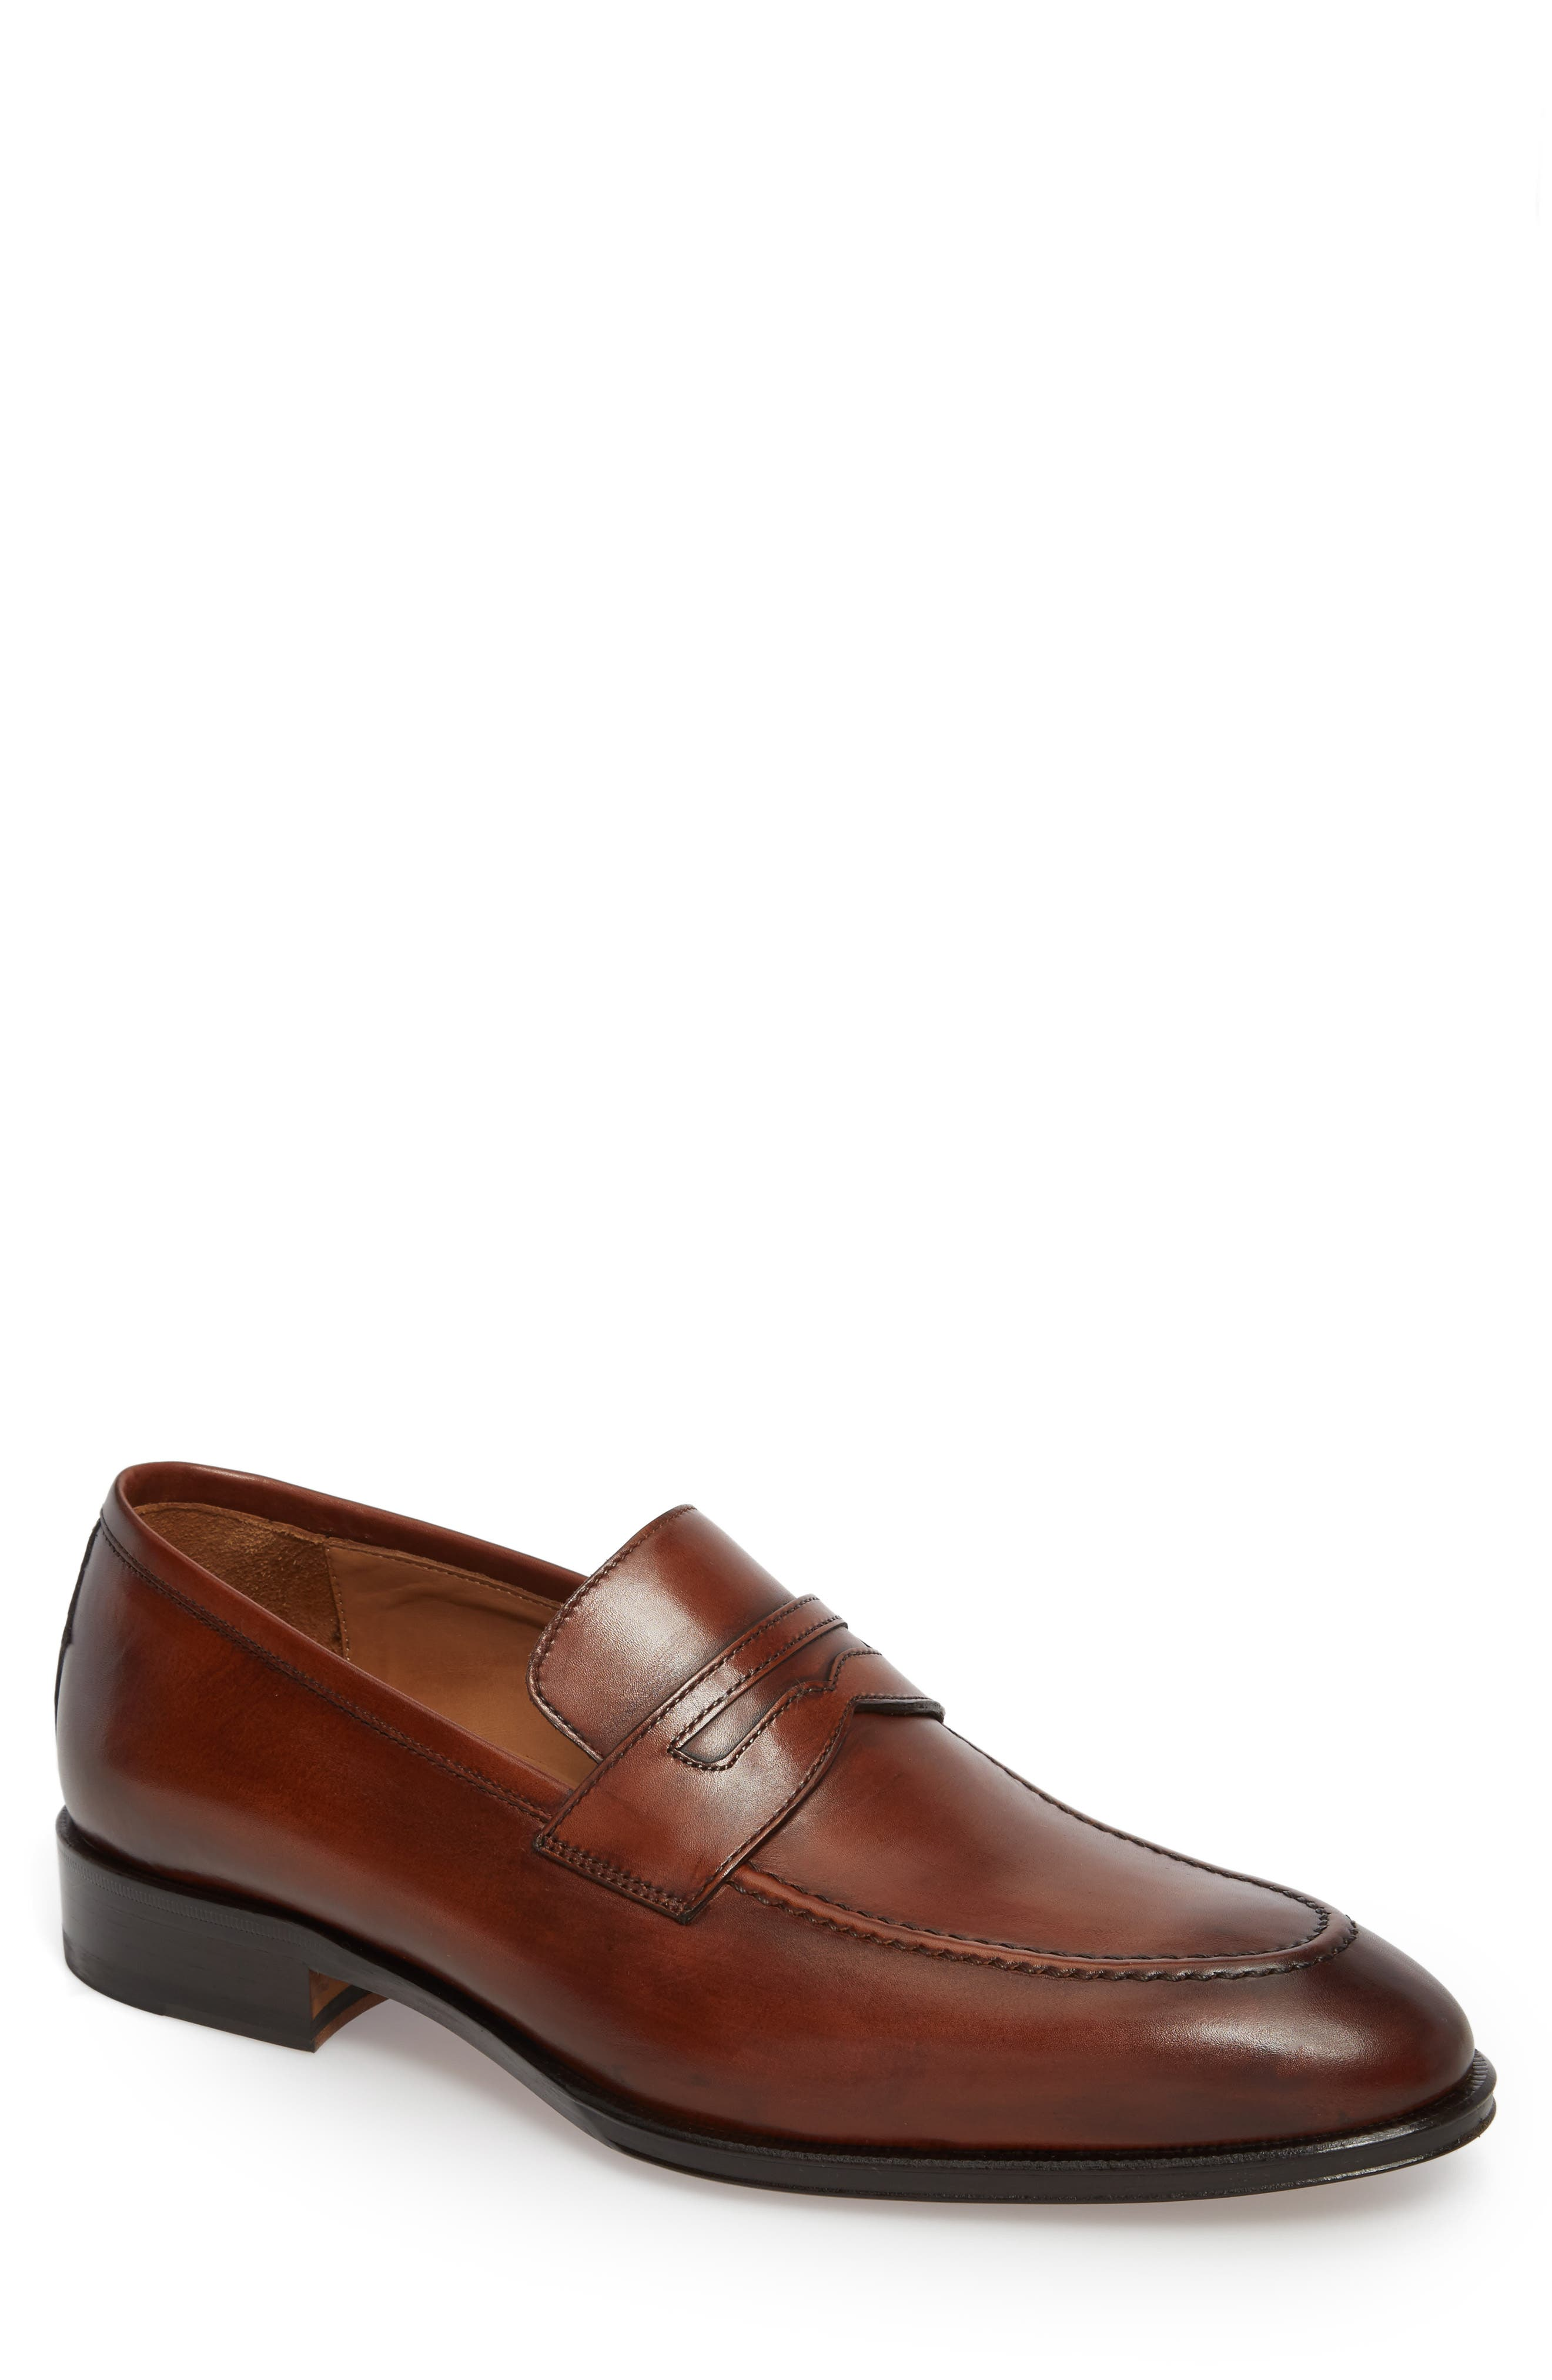 Penny Loafer,                         Main,                         color, 202